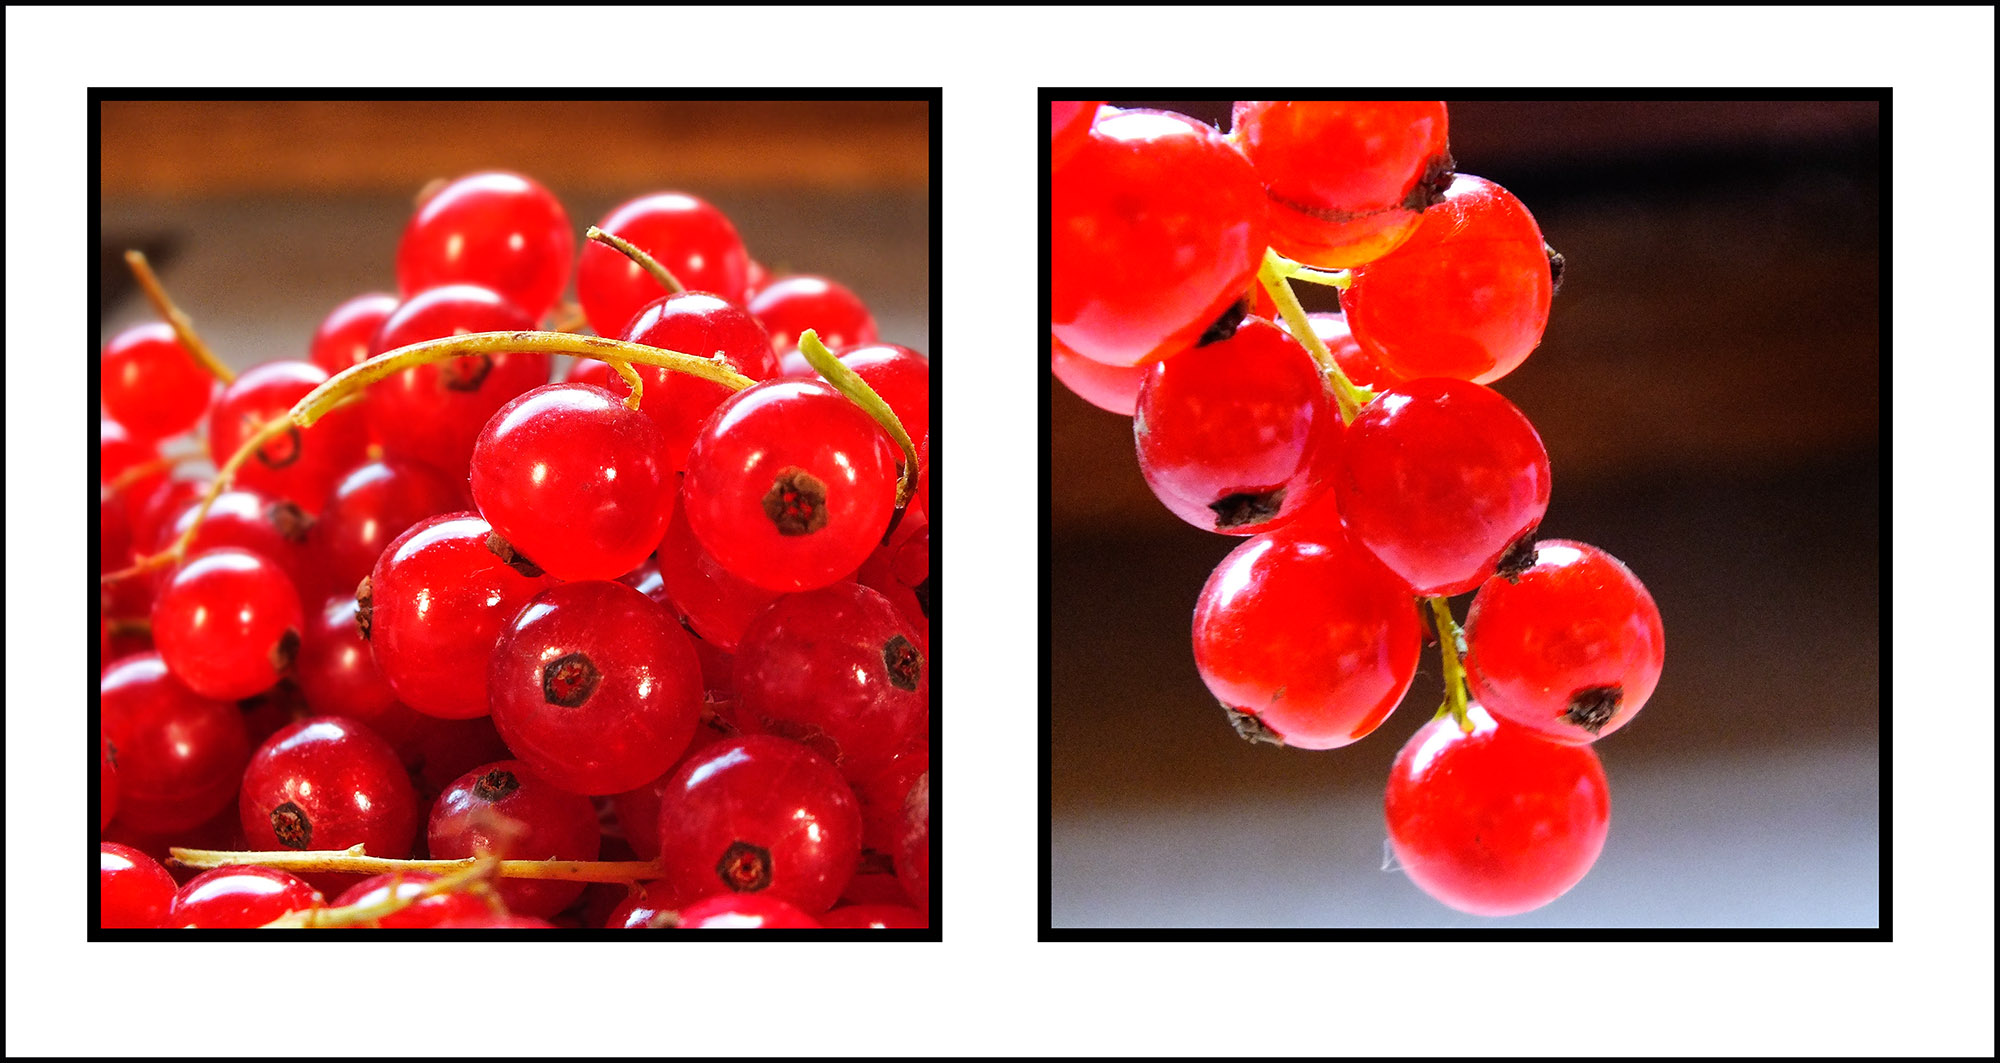 Trish's red currant jelly